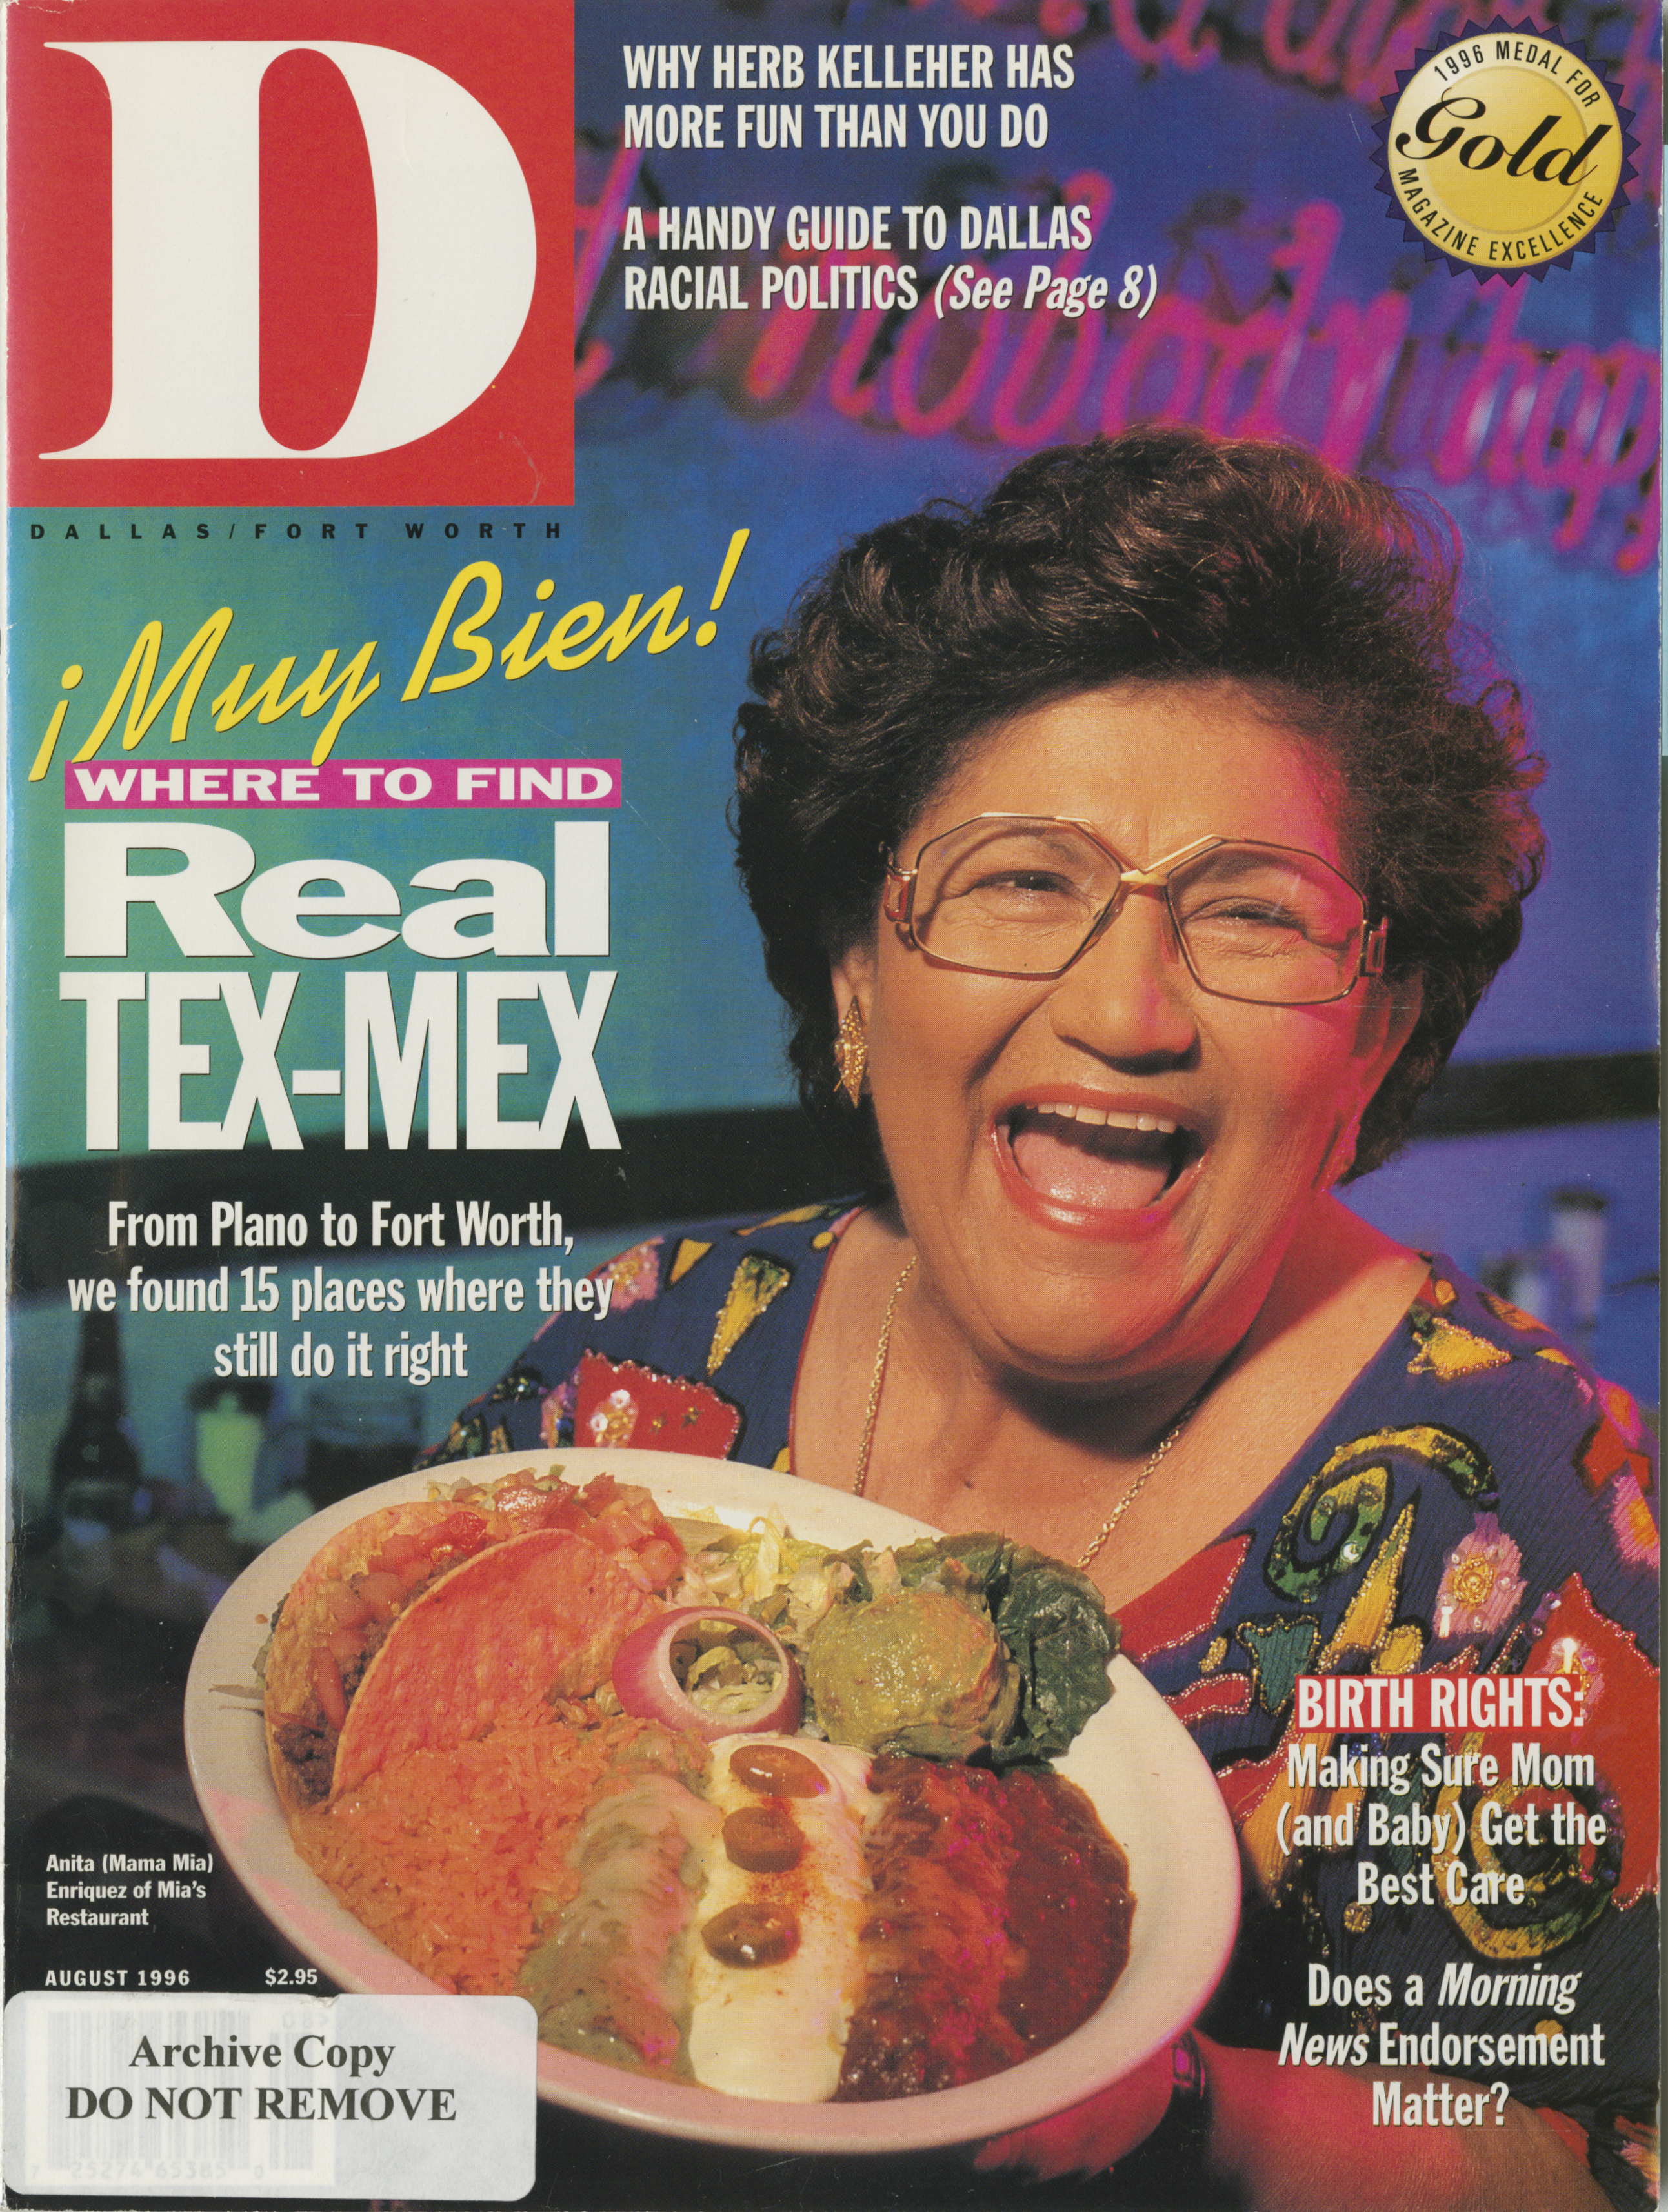 August 1996 cover